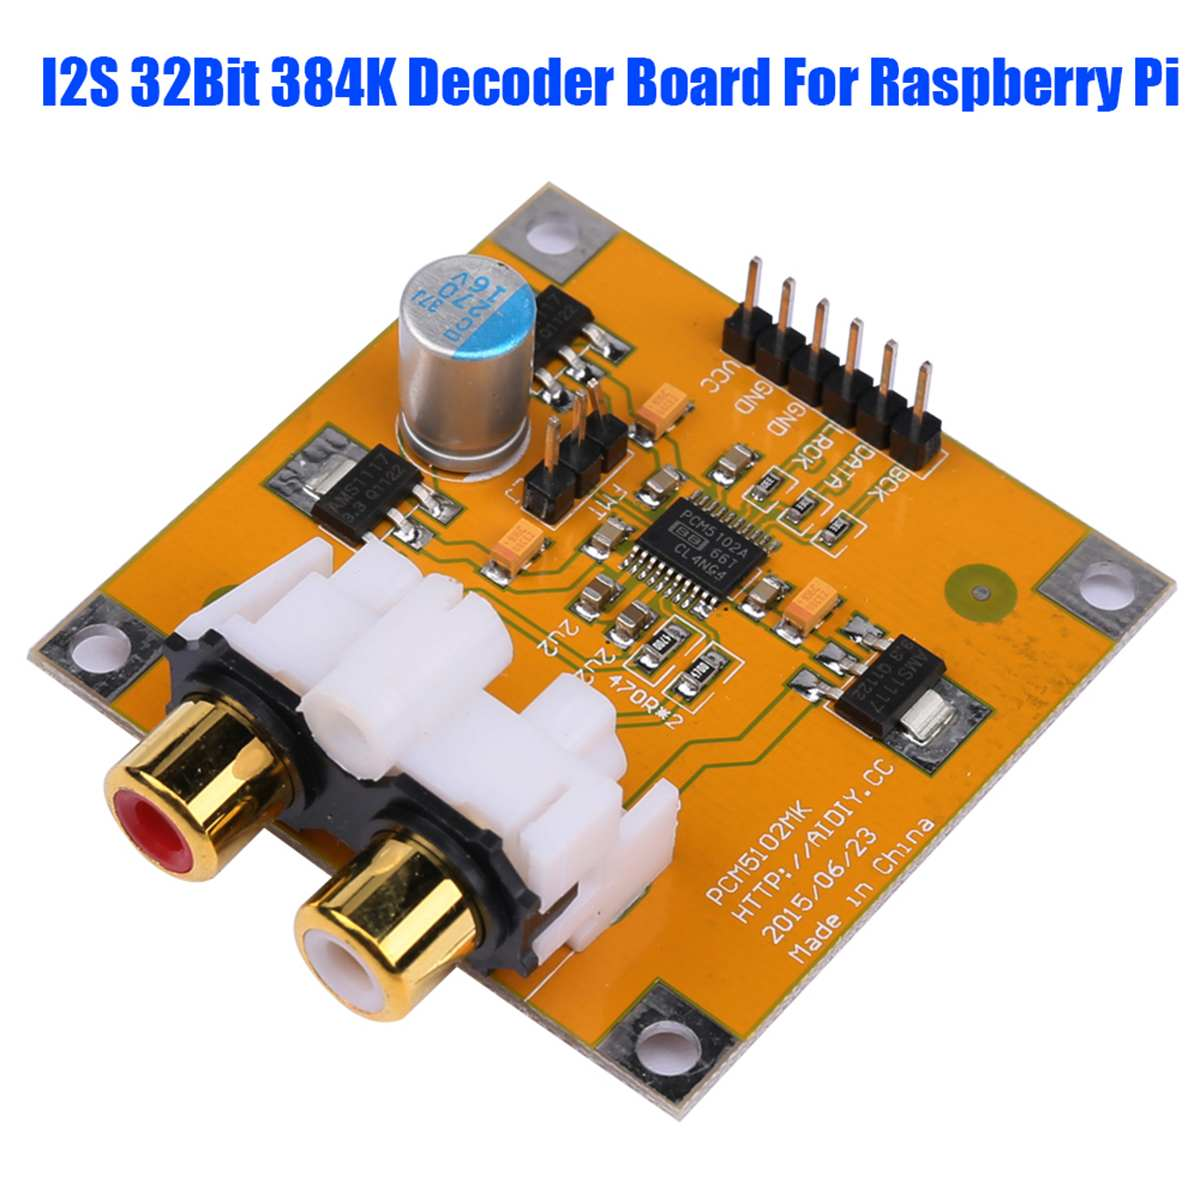 Cliate 1pc Dac Decoder Board M5102/pcm5102a I2s 32bit 384k For Raspberry Pi Red Core Player Dac